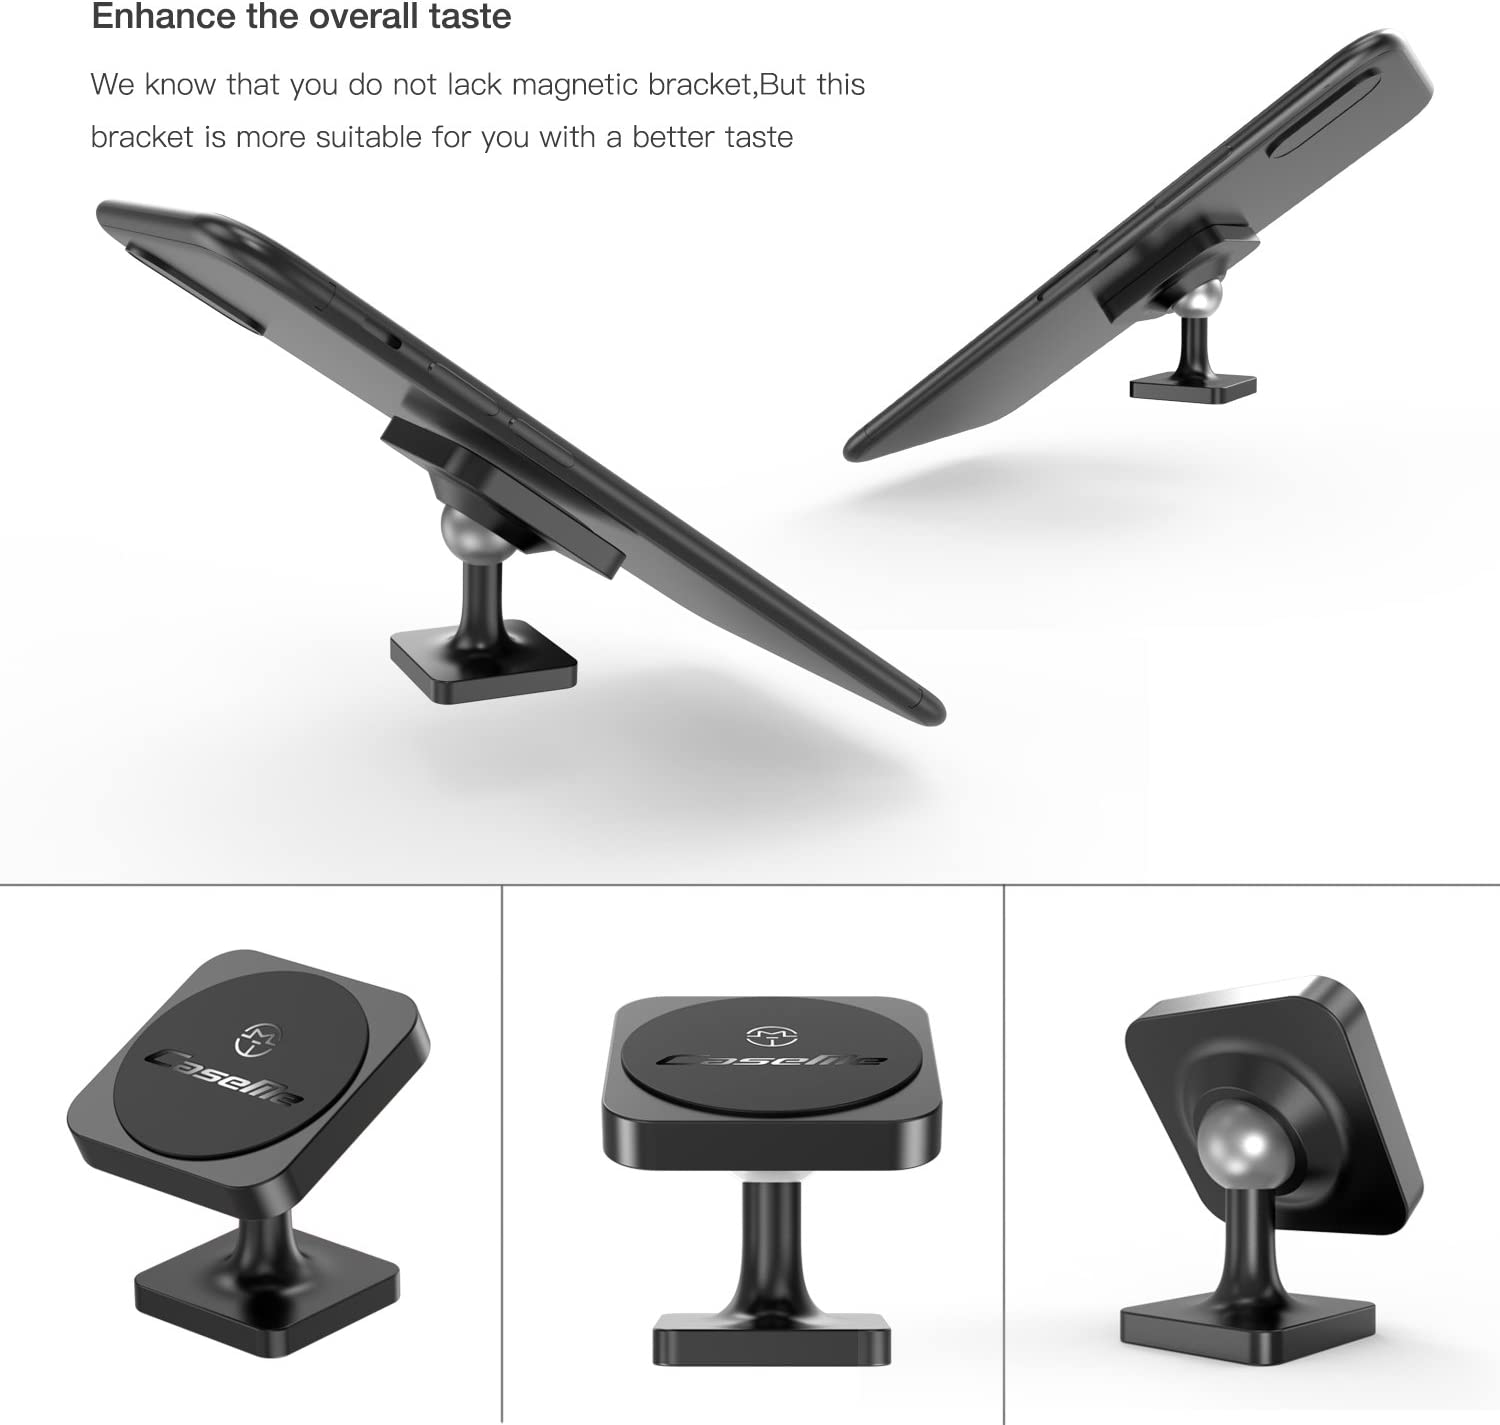 Hong Xinyu Huawei and More HTC,LG Magnetic Cell Phone Holder for Car,Car Phone Holder 360/° Rotation from Dashboard Universal Magnetic Car Mount for Cell Phone GPS Apple iPhone,Samsung Galaxy Circular-Black